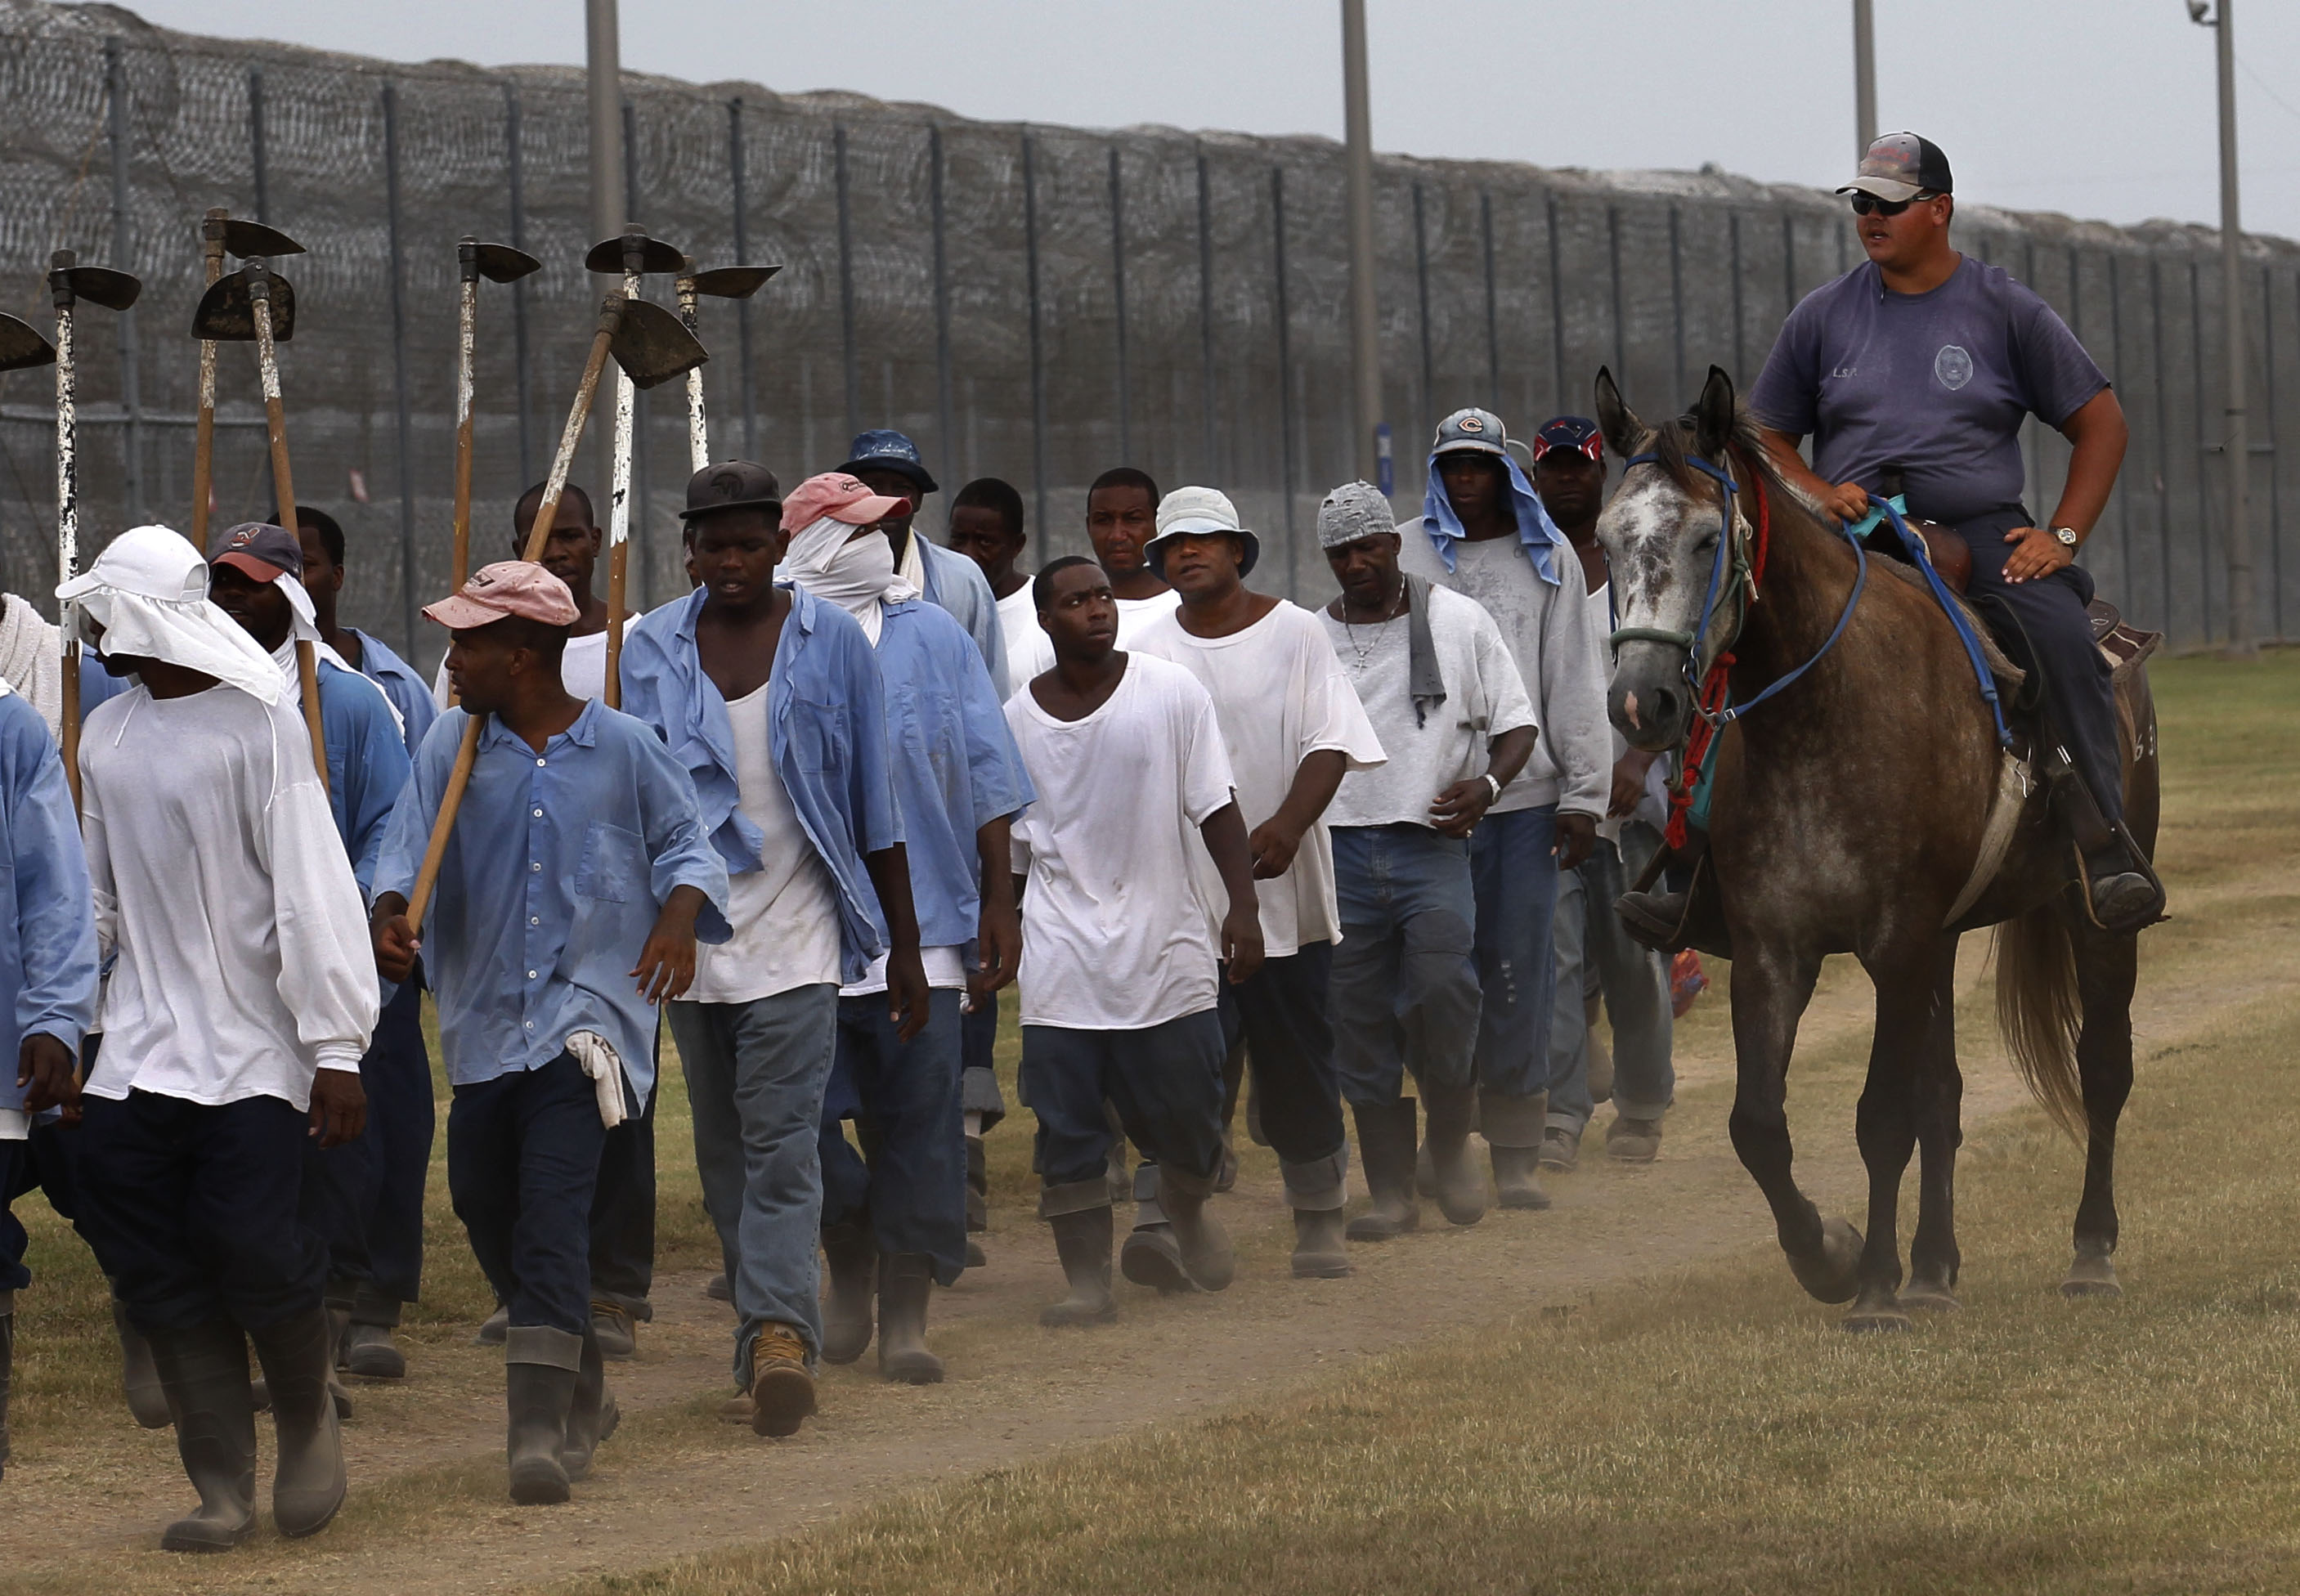 In this Aug. 18, 2011 photo, prison guards ride horses that were broken by inmates as they return from farm work detail at the Louisiana State Penitentiary in Angola, La. Some prisoners spend eight hours a day training horses to work in some of the most chaotic situations police officers face: everything from controlling huge crowds to helping break up riots. They also use the animals for work at the prison farm, cultivating fields, helping to control weeds, hauling wagons and equipment. They also sell them, with their second annual horse sale scheduled for October. (AP Photo/Gerald Herbert)